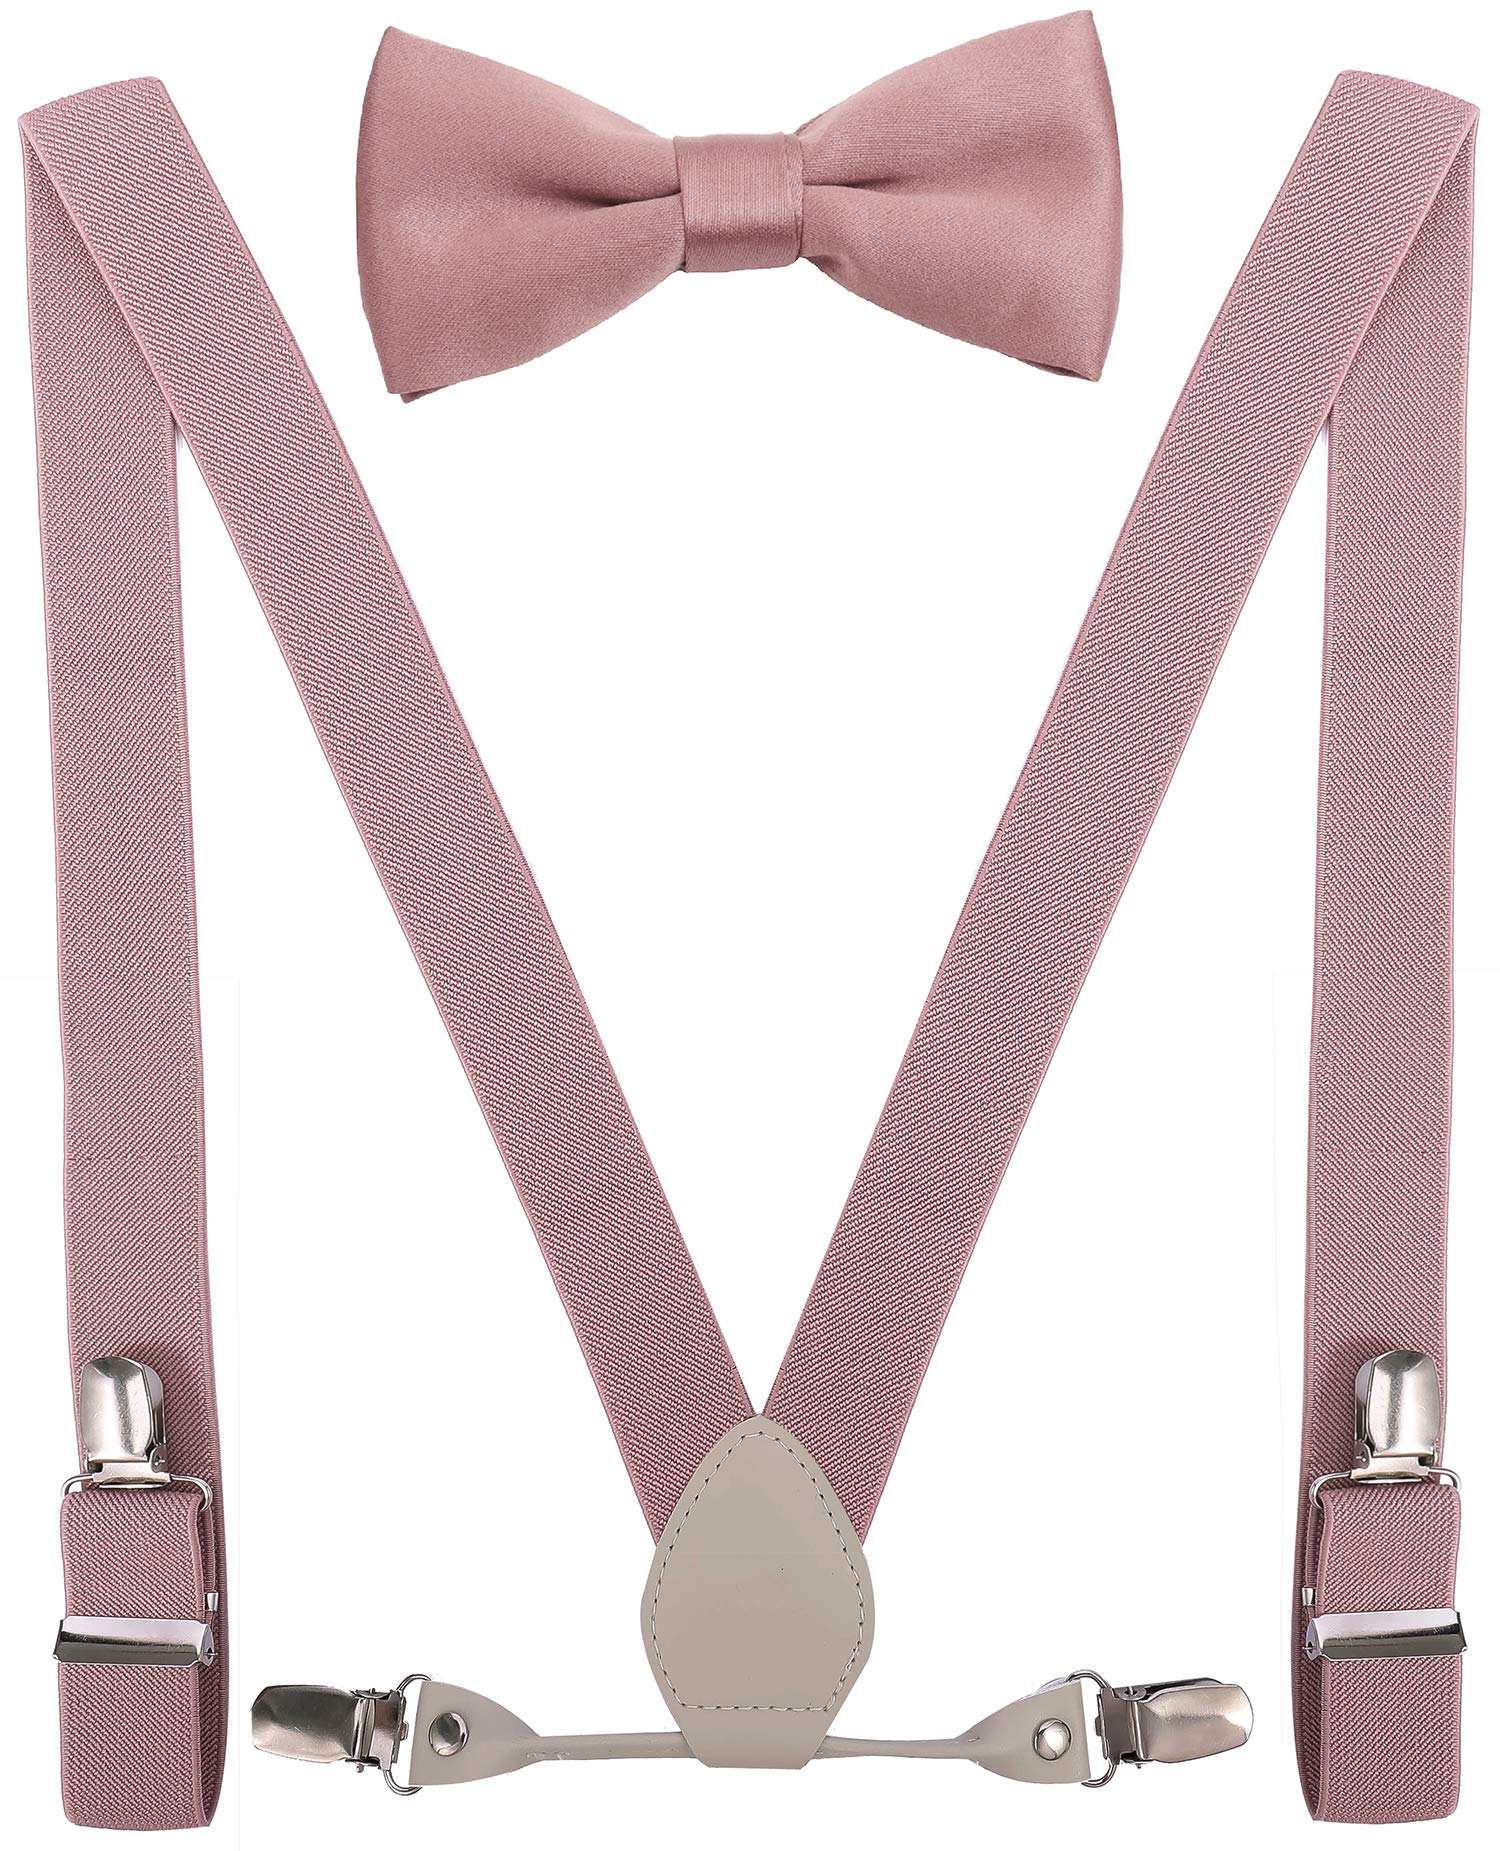 YJDS Girls Leather Suspenders and Bowtie Set Elastic for Wedding Blush Pink 39'' by YJDS